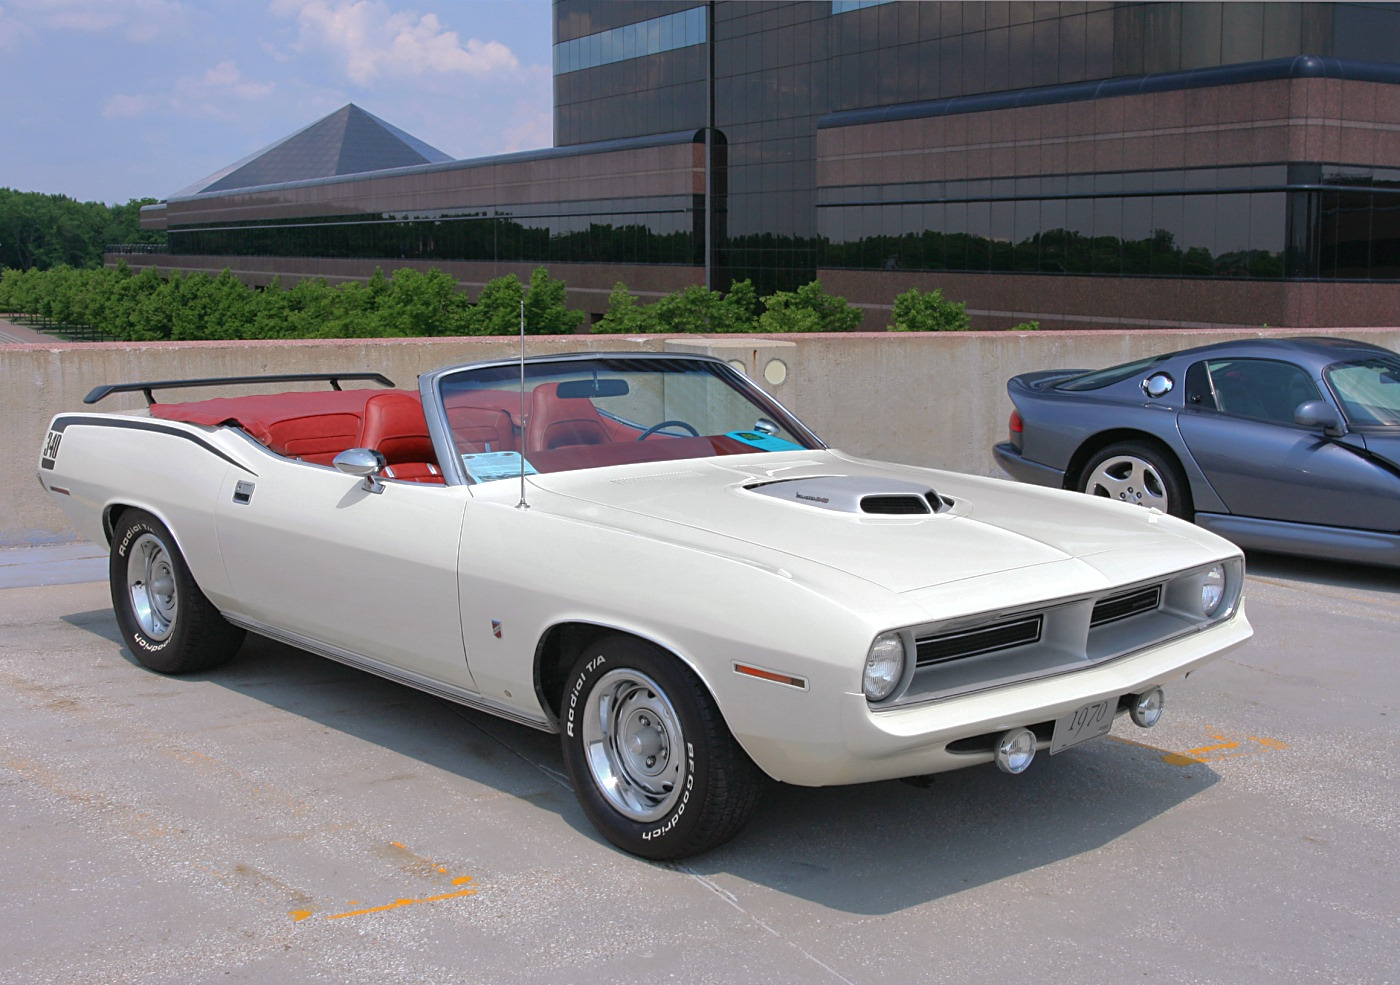 1971 plymouth cuda convertible for sale autos post autos post. Black Bedroom Furniture Sets. Home Design Ideas